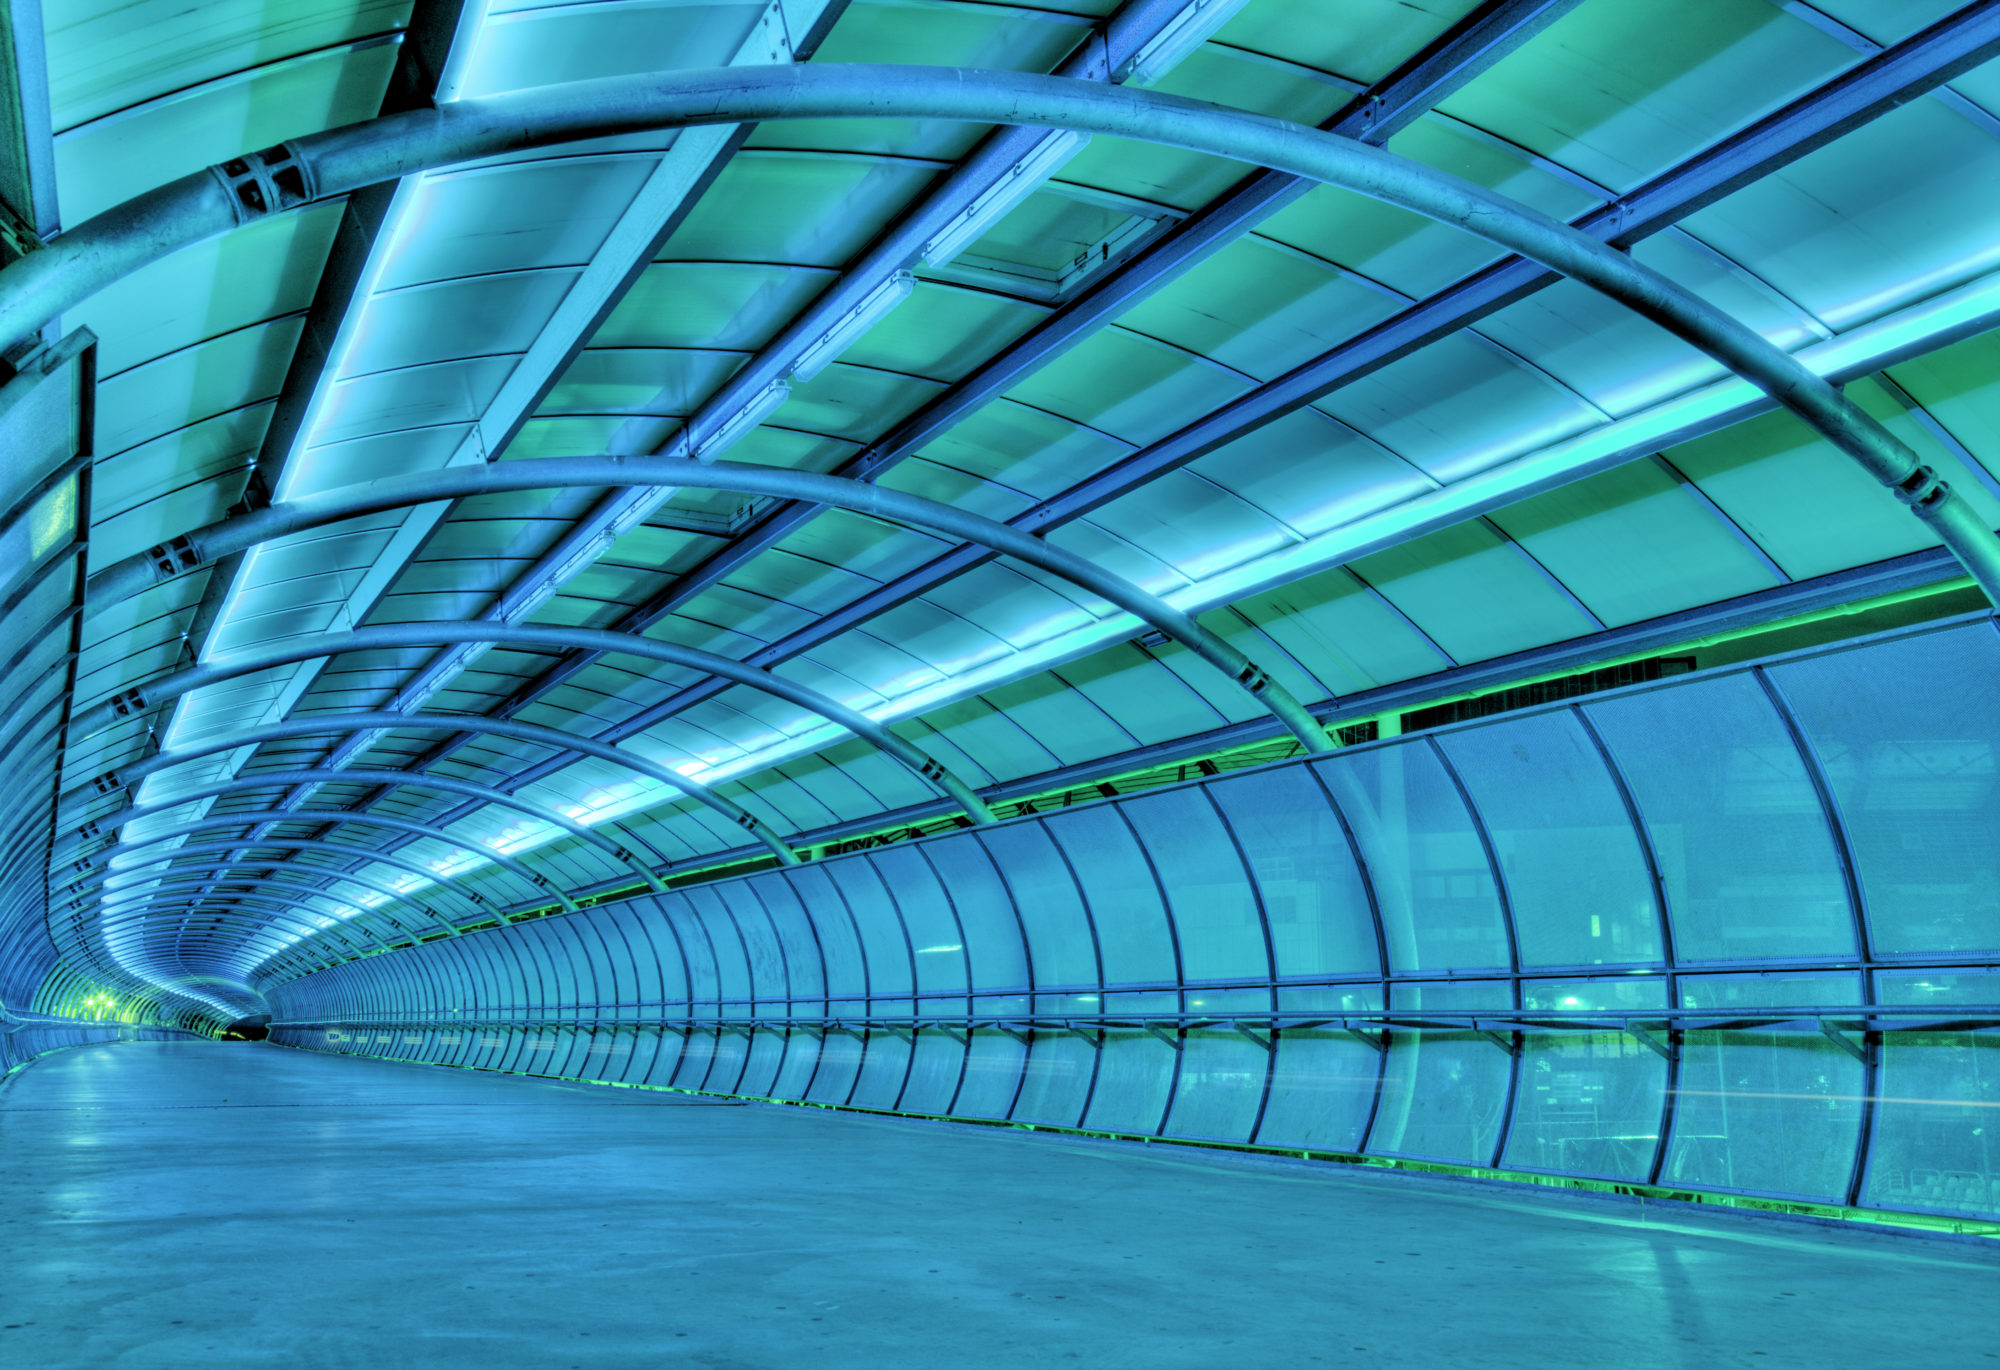 A lit-up view of an innovating tunnel of next generation